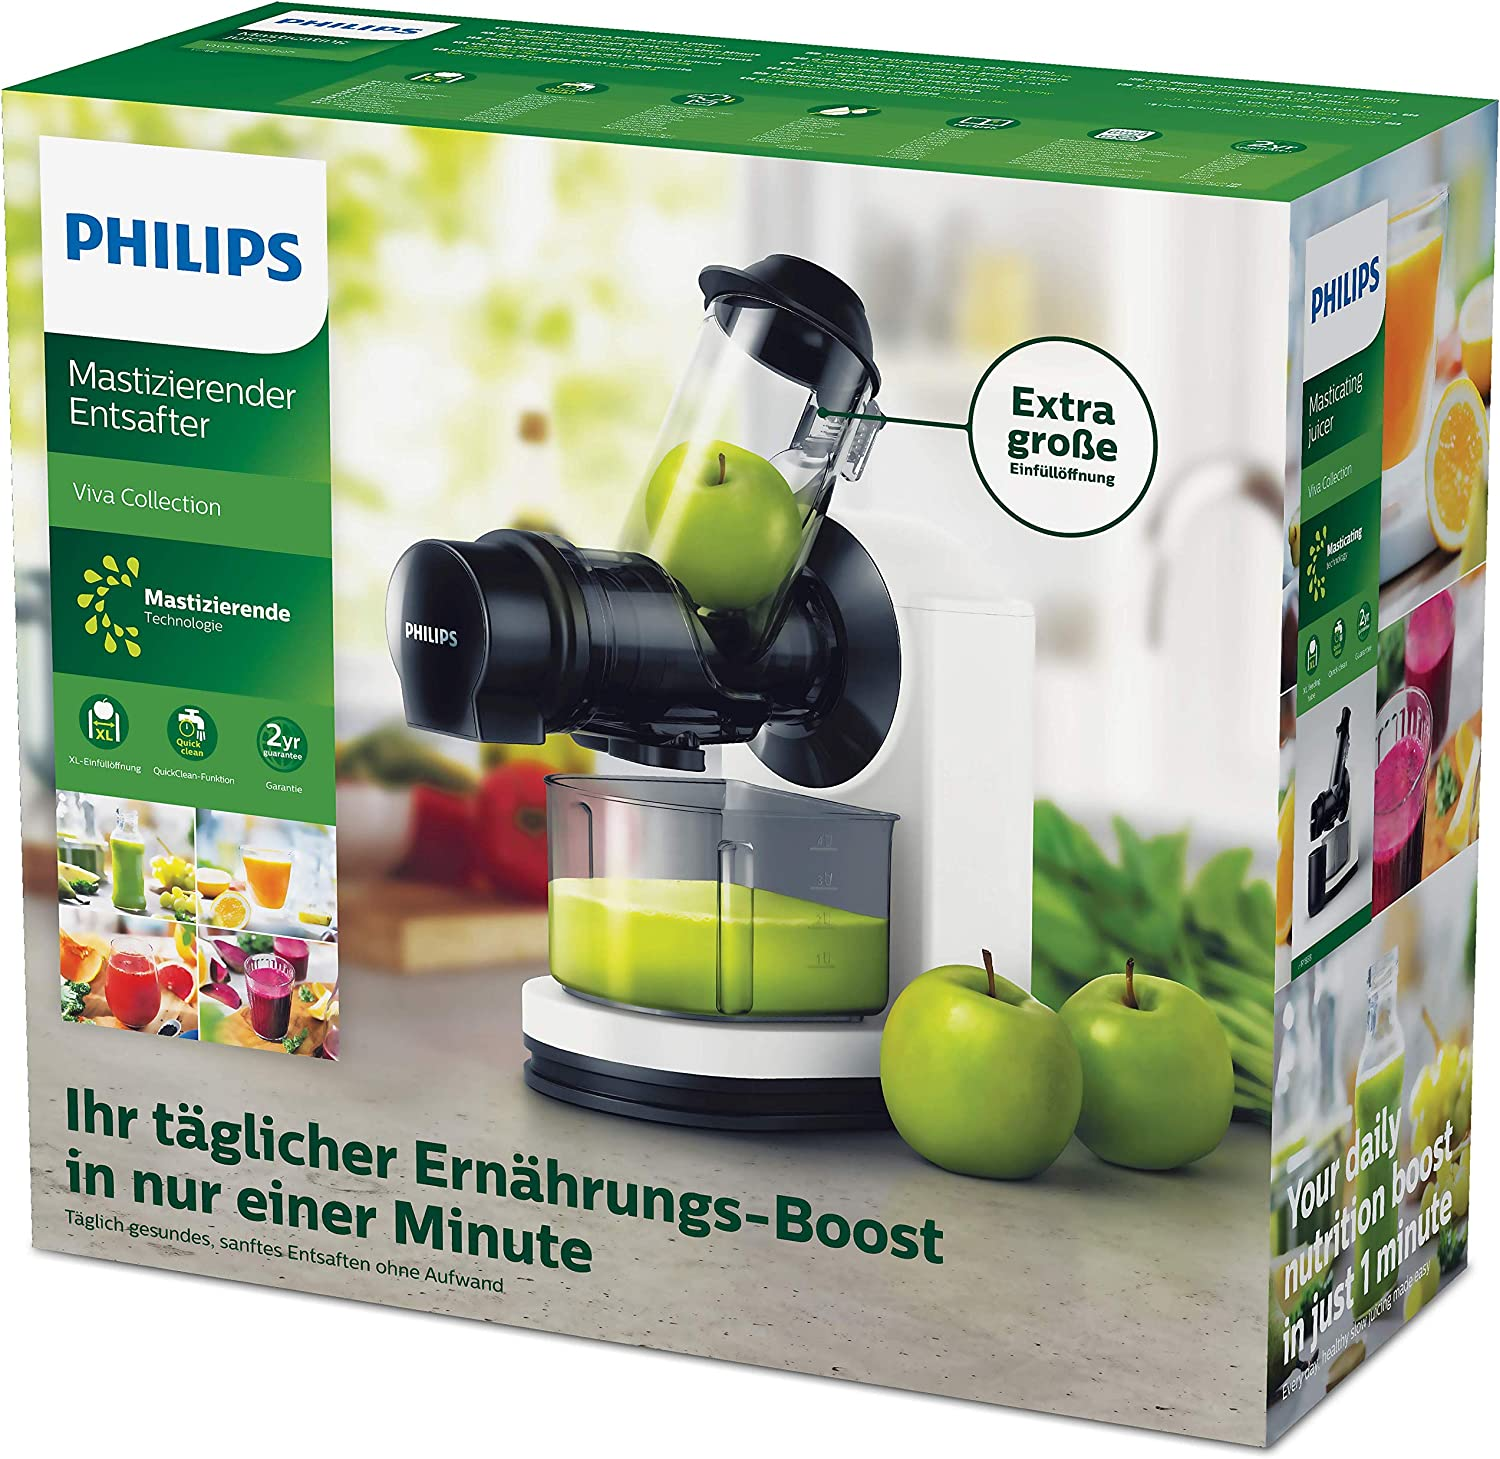 Philips HR188880 Viva Collection